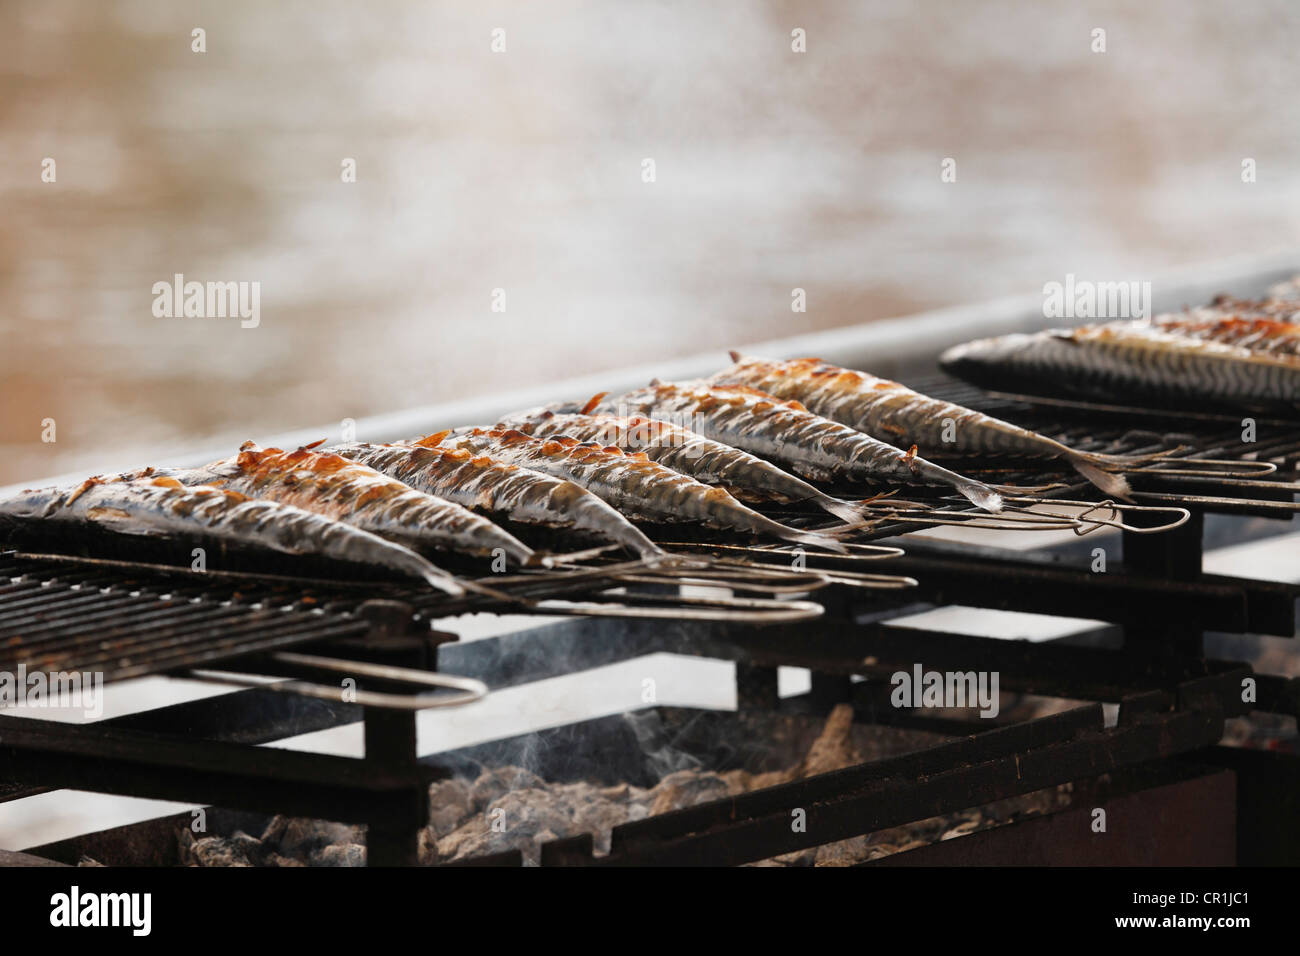 Fish on a grill, Sandkerwa, folk festival, Bamberg, Upper Franconia, Franconia, Bavaria, Germany, Europe, PublicGround - Stock Image